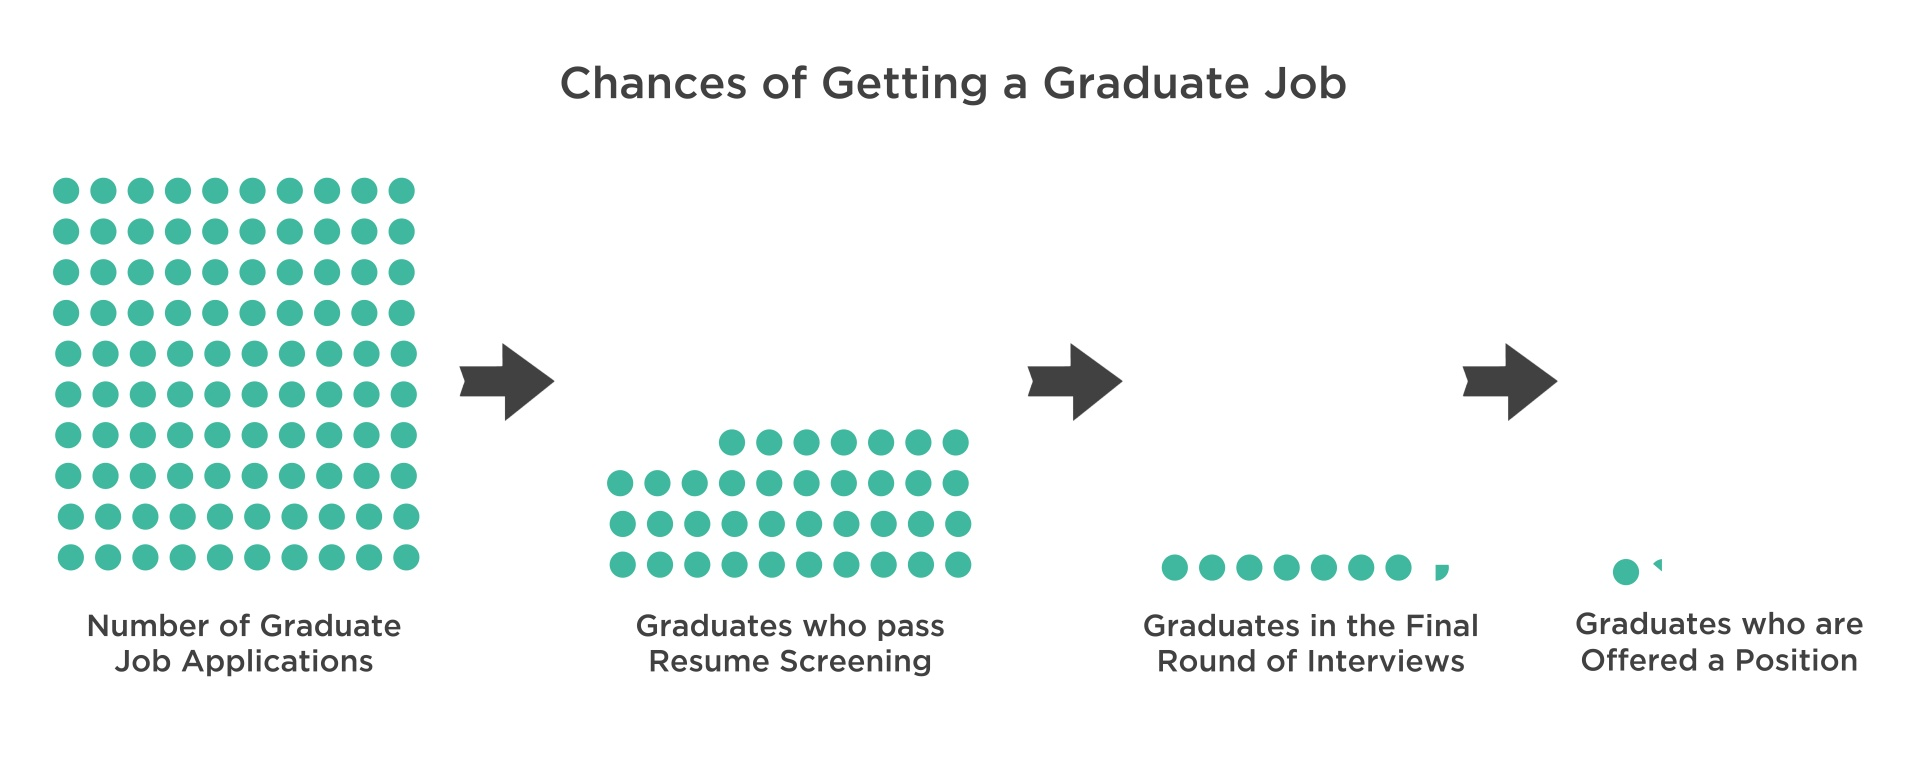 3 Reasons Why Only 3% Of Graduate Applications Result In A Job Offer Offer 1